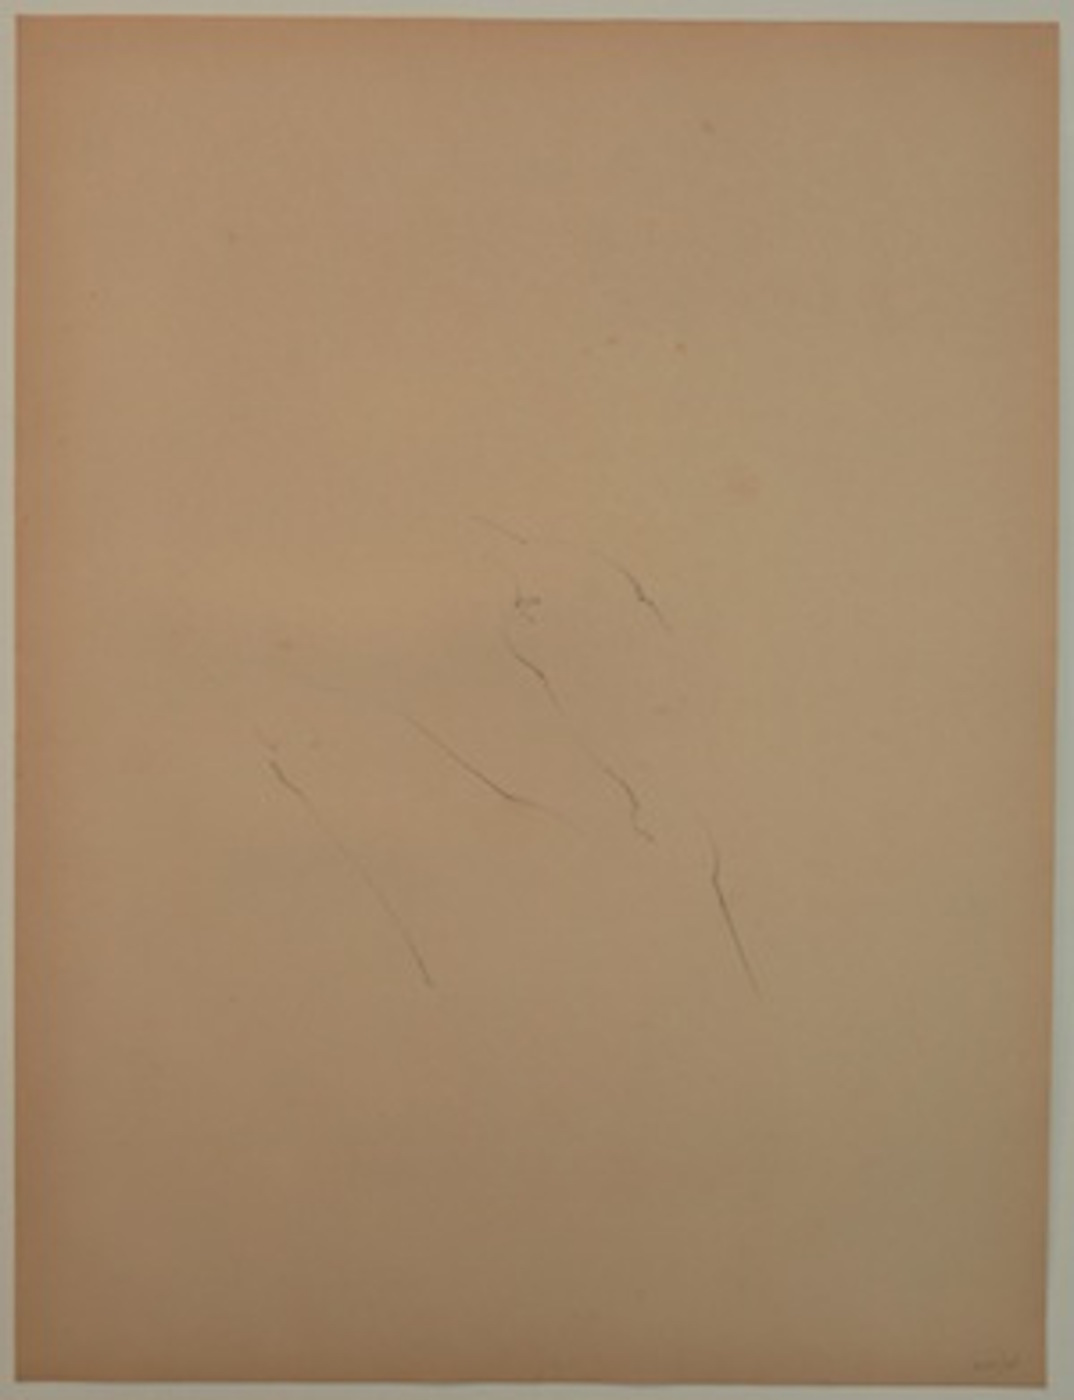 Lala Rukh  Untitled (7) 1983 – 1985 Conté on paper 74 x 56.5 cm